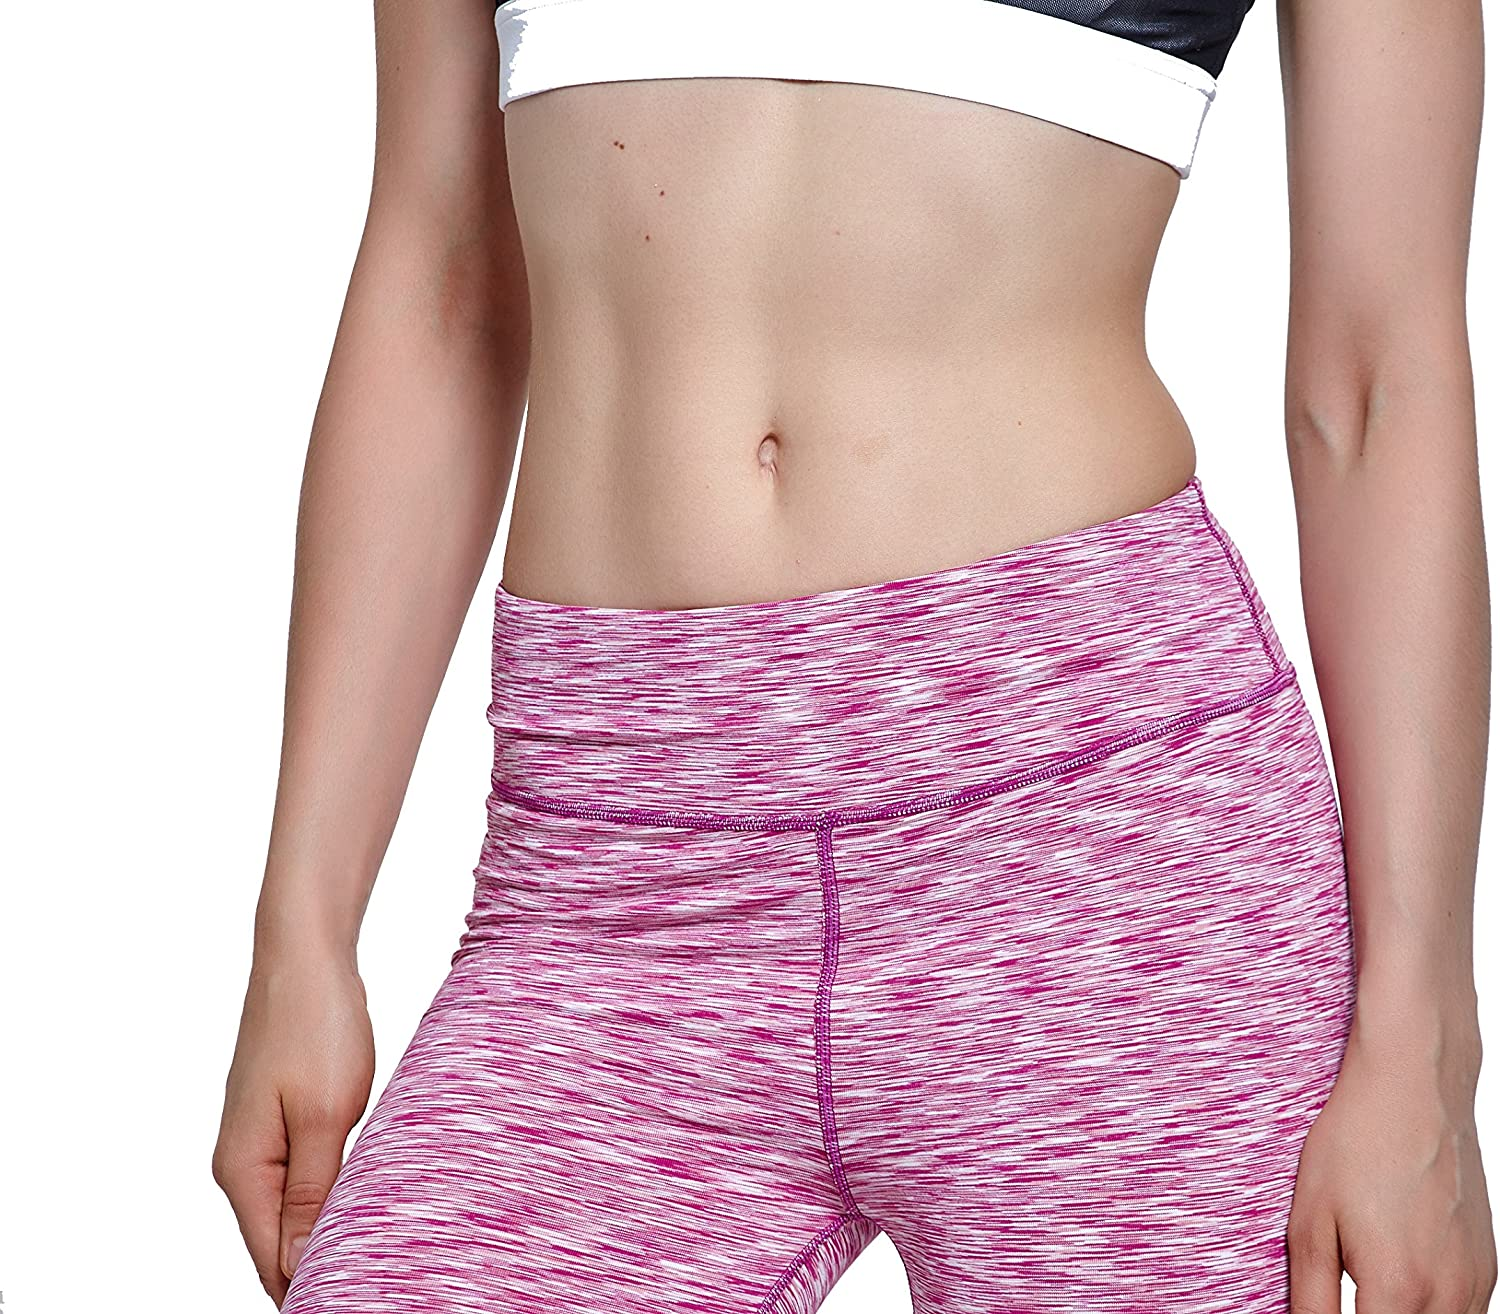 Lotsyle Long Sport Compression Shorts for Women Riding Running Workout